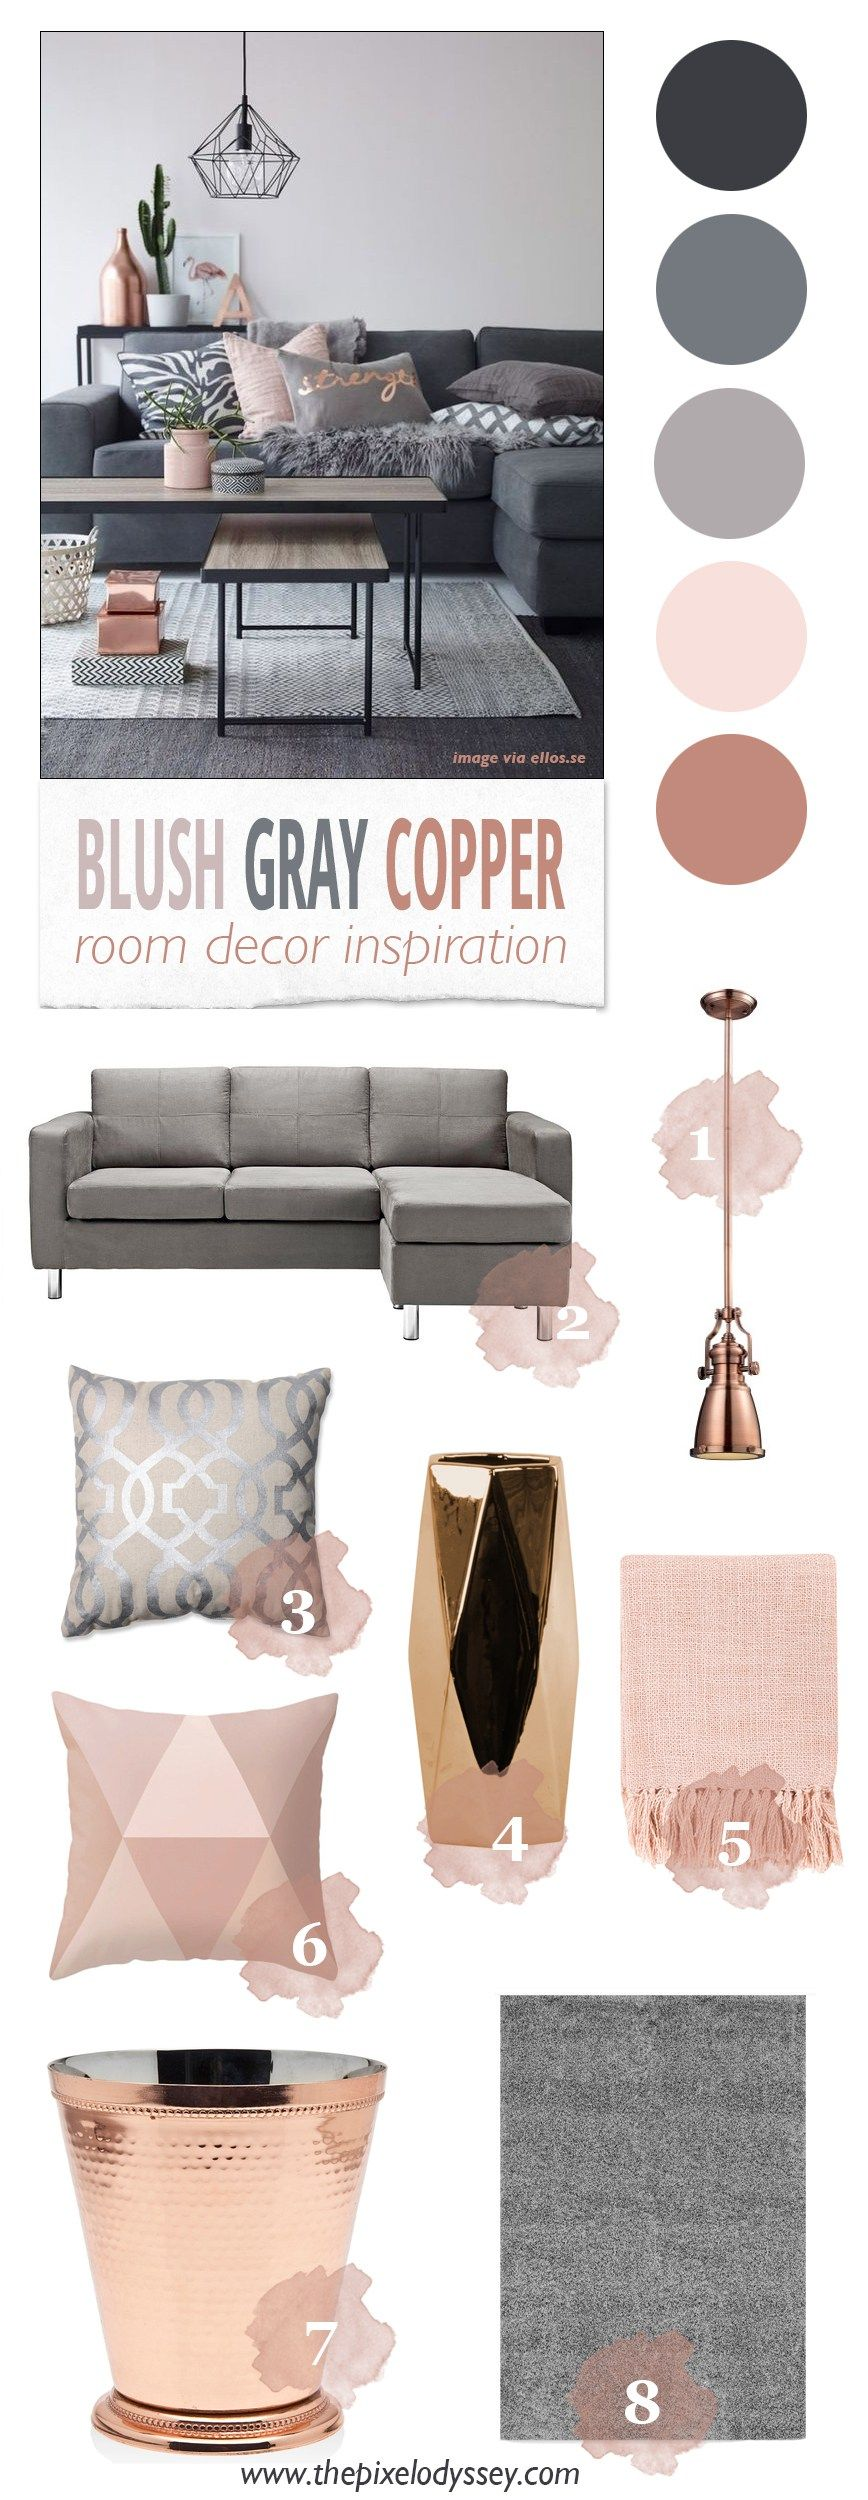 Blush gray copper room decor inspiration room decor trendy accessories and color inspiration - Rm decoration pic ...